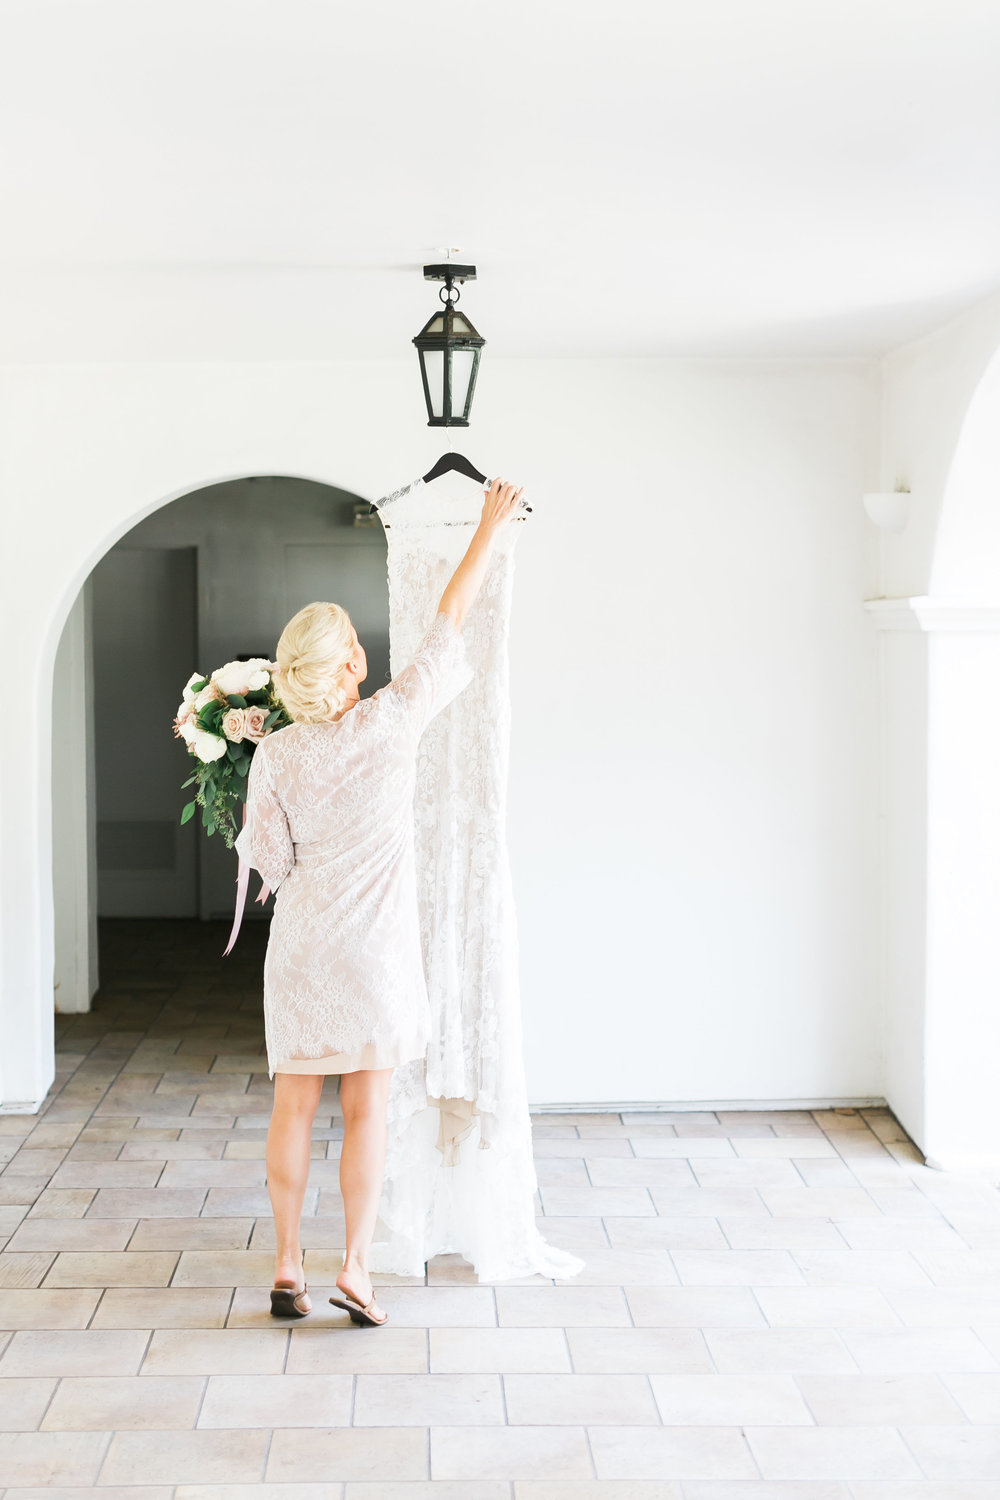 Bride taking wedding dress off hanger.   CREDITS:  Destination Wedding Planner  ANDREA EPPOLITO EVENTS  · Images by  J.ANNE P  HOTOGRAPHY  · Video  HOO FILMS  · Venue Ritz Carlton Bacara Santa Barbara ·Gown  MONIQUE LHULLIER ·Bridesmaids Dresses  SHOW ME YOUR MUMU ·Stationery  SHE PAPERIE ·Bride's Shoes  BADGLEY MISCHKA ·Hair and Makeup  TEAM HAIR AND MAKEUP · Floral  BLUE MAGNOLIA ·Linen  LA TAVOLA ·Decor Rentals  TENT MERCHANT ·Calligraphy  EBB ·Lighting  FIVE STAR AV ·Ice Cream Station  MCCONNELL'S ICE CREAM